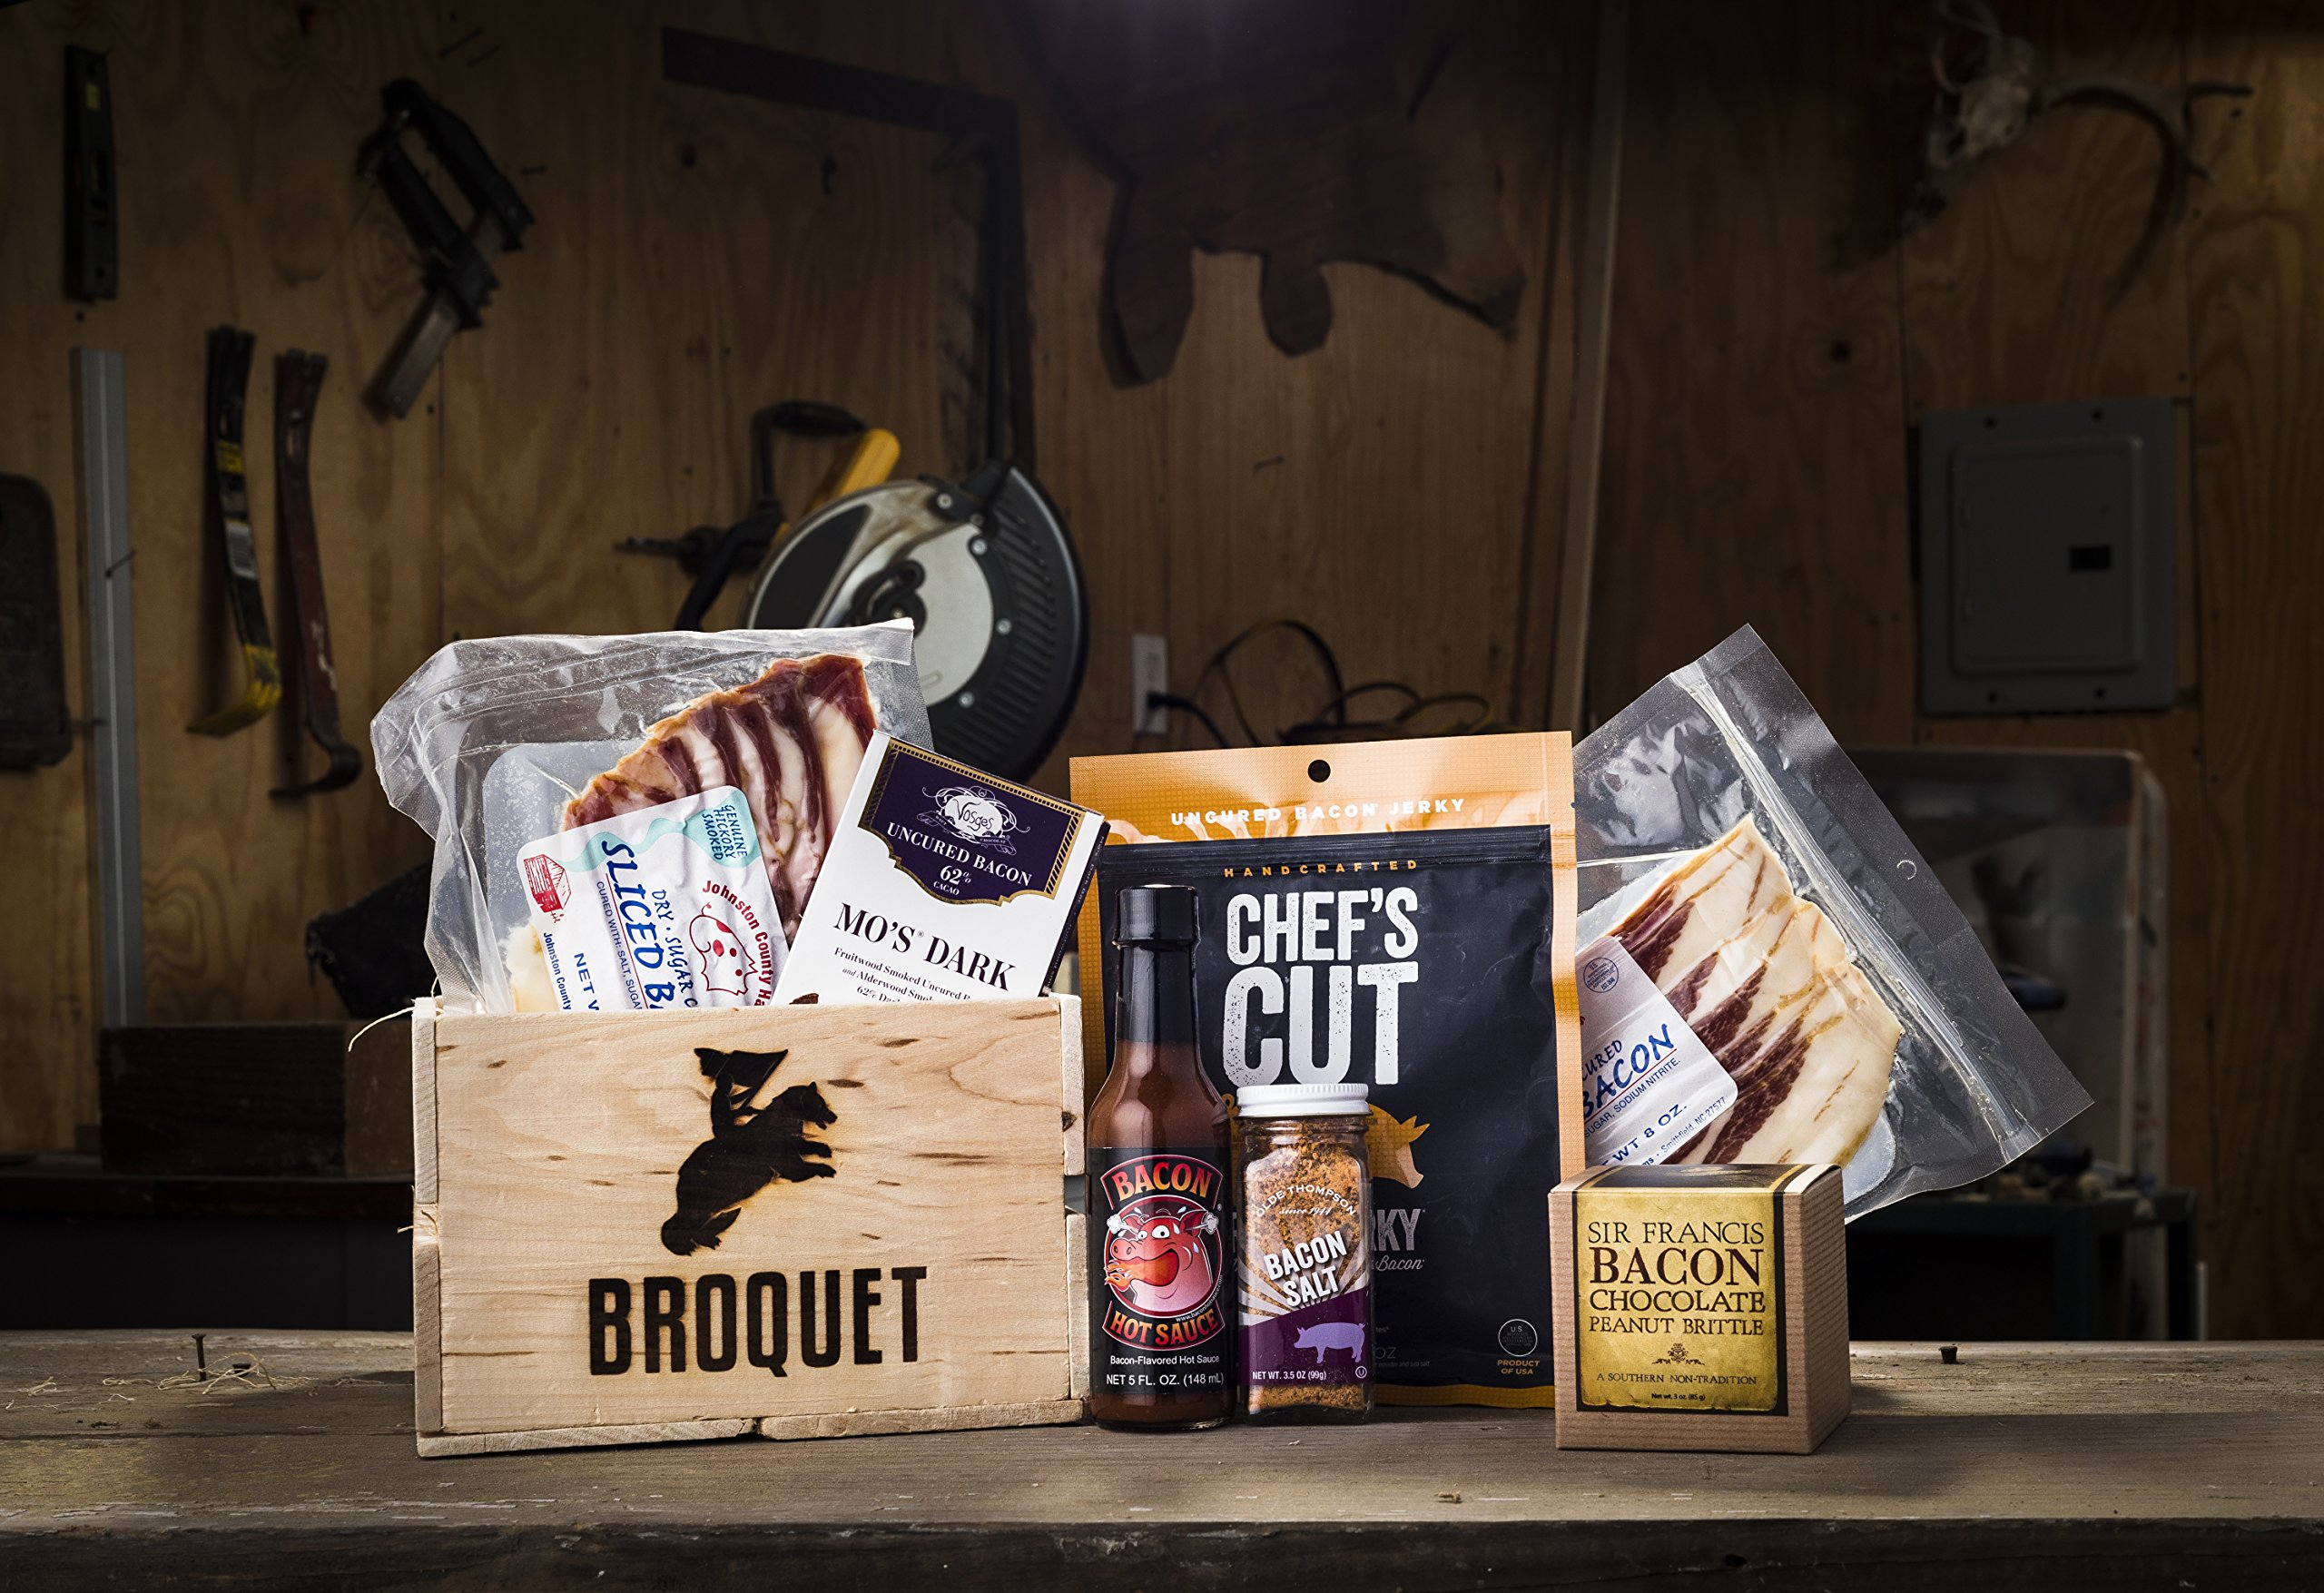 Bacon Gift Pack (Bacon Lover Sampler Set) - Bacon Six Ways - Gourmet Food Gift - Great Gift For Men - Comes in a Wooden Gift Crate by Broquet (Image #2)